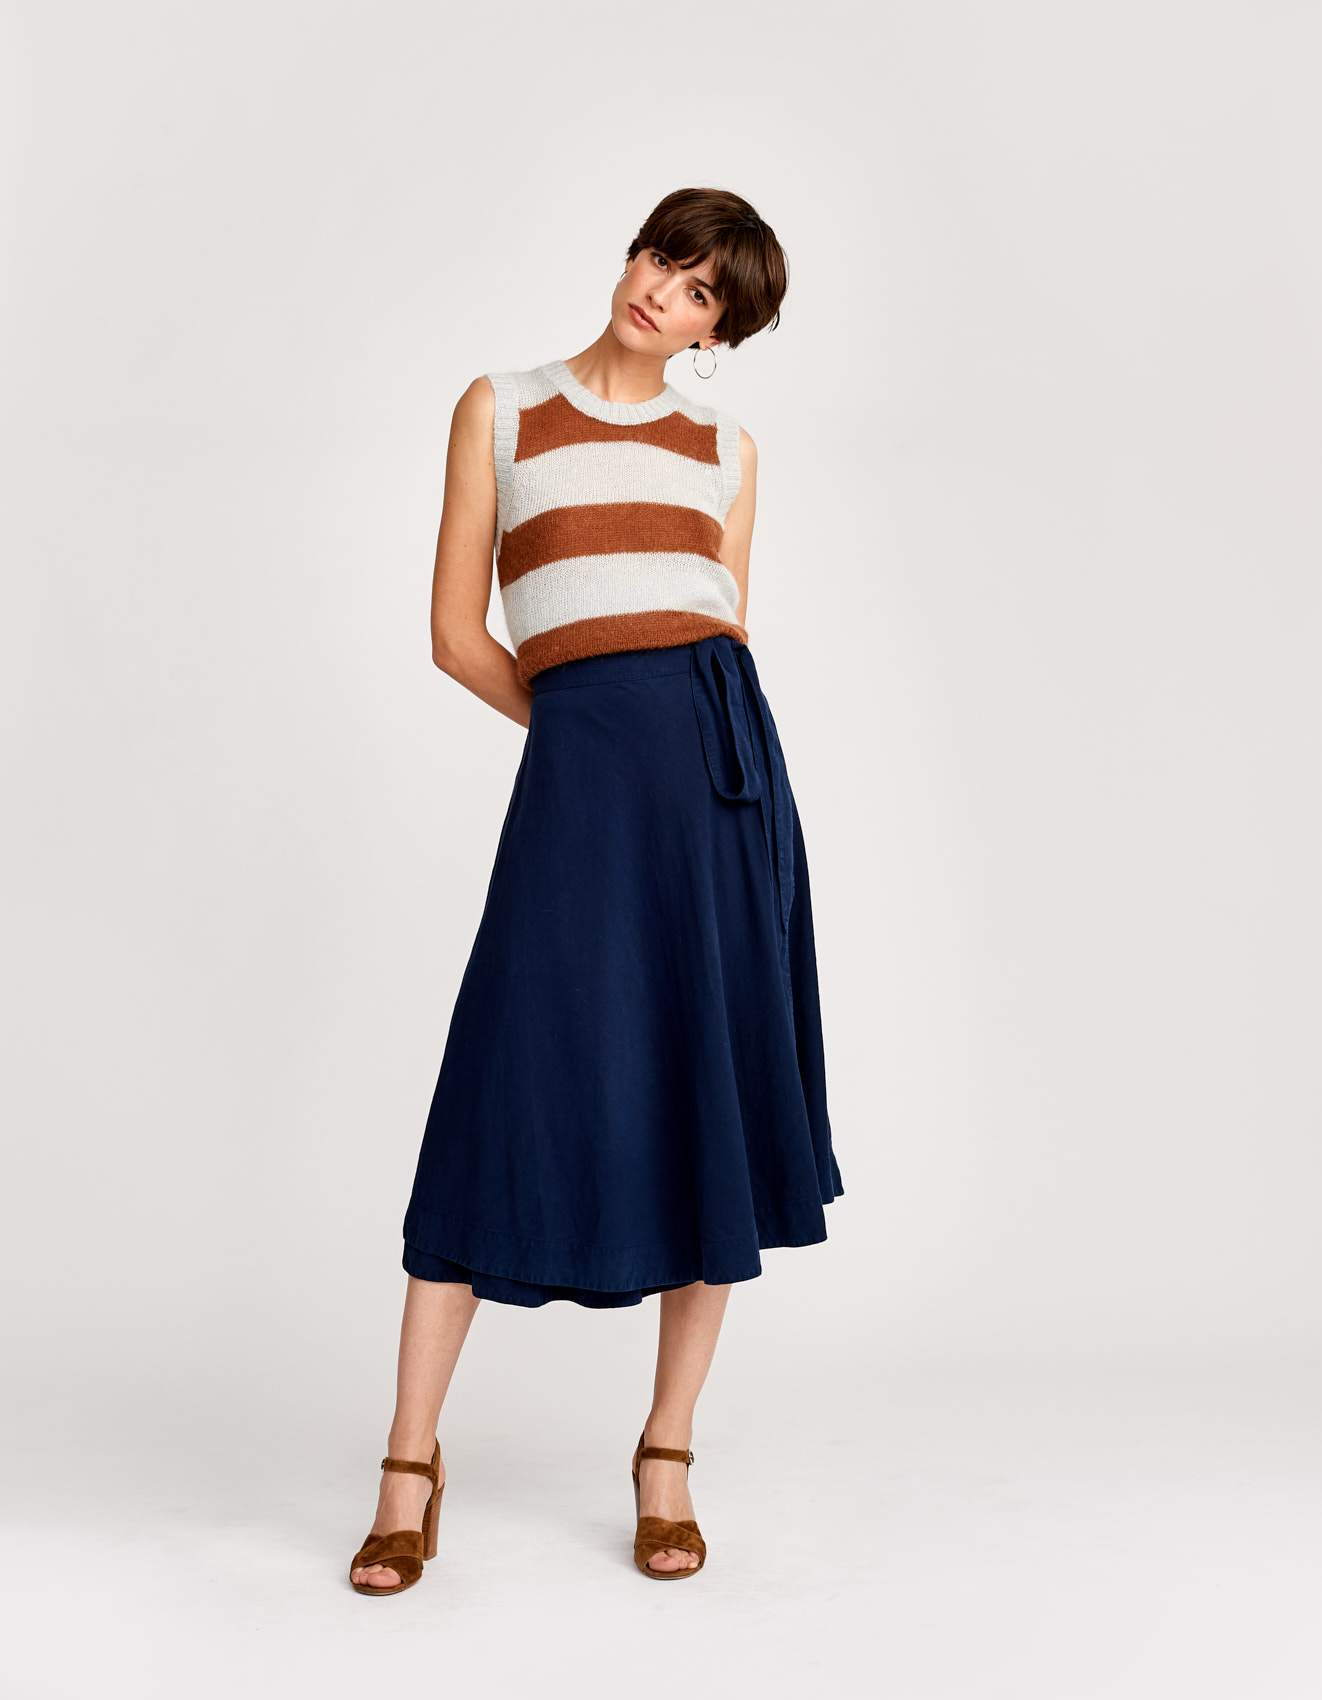 Bellerose blue adjustable wrap skirt for women